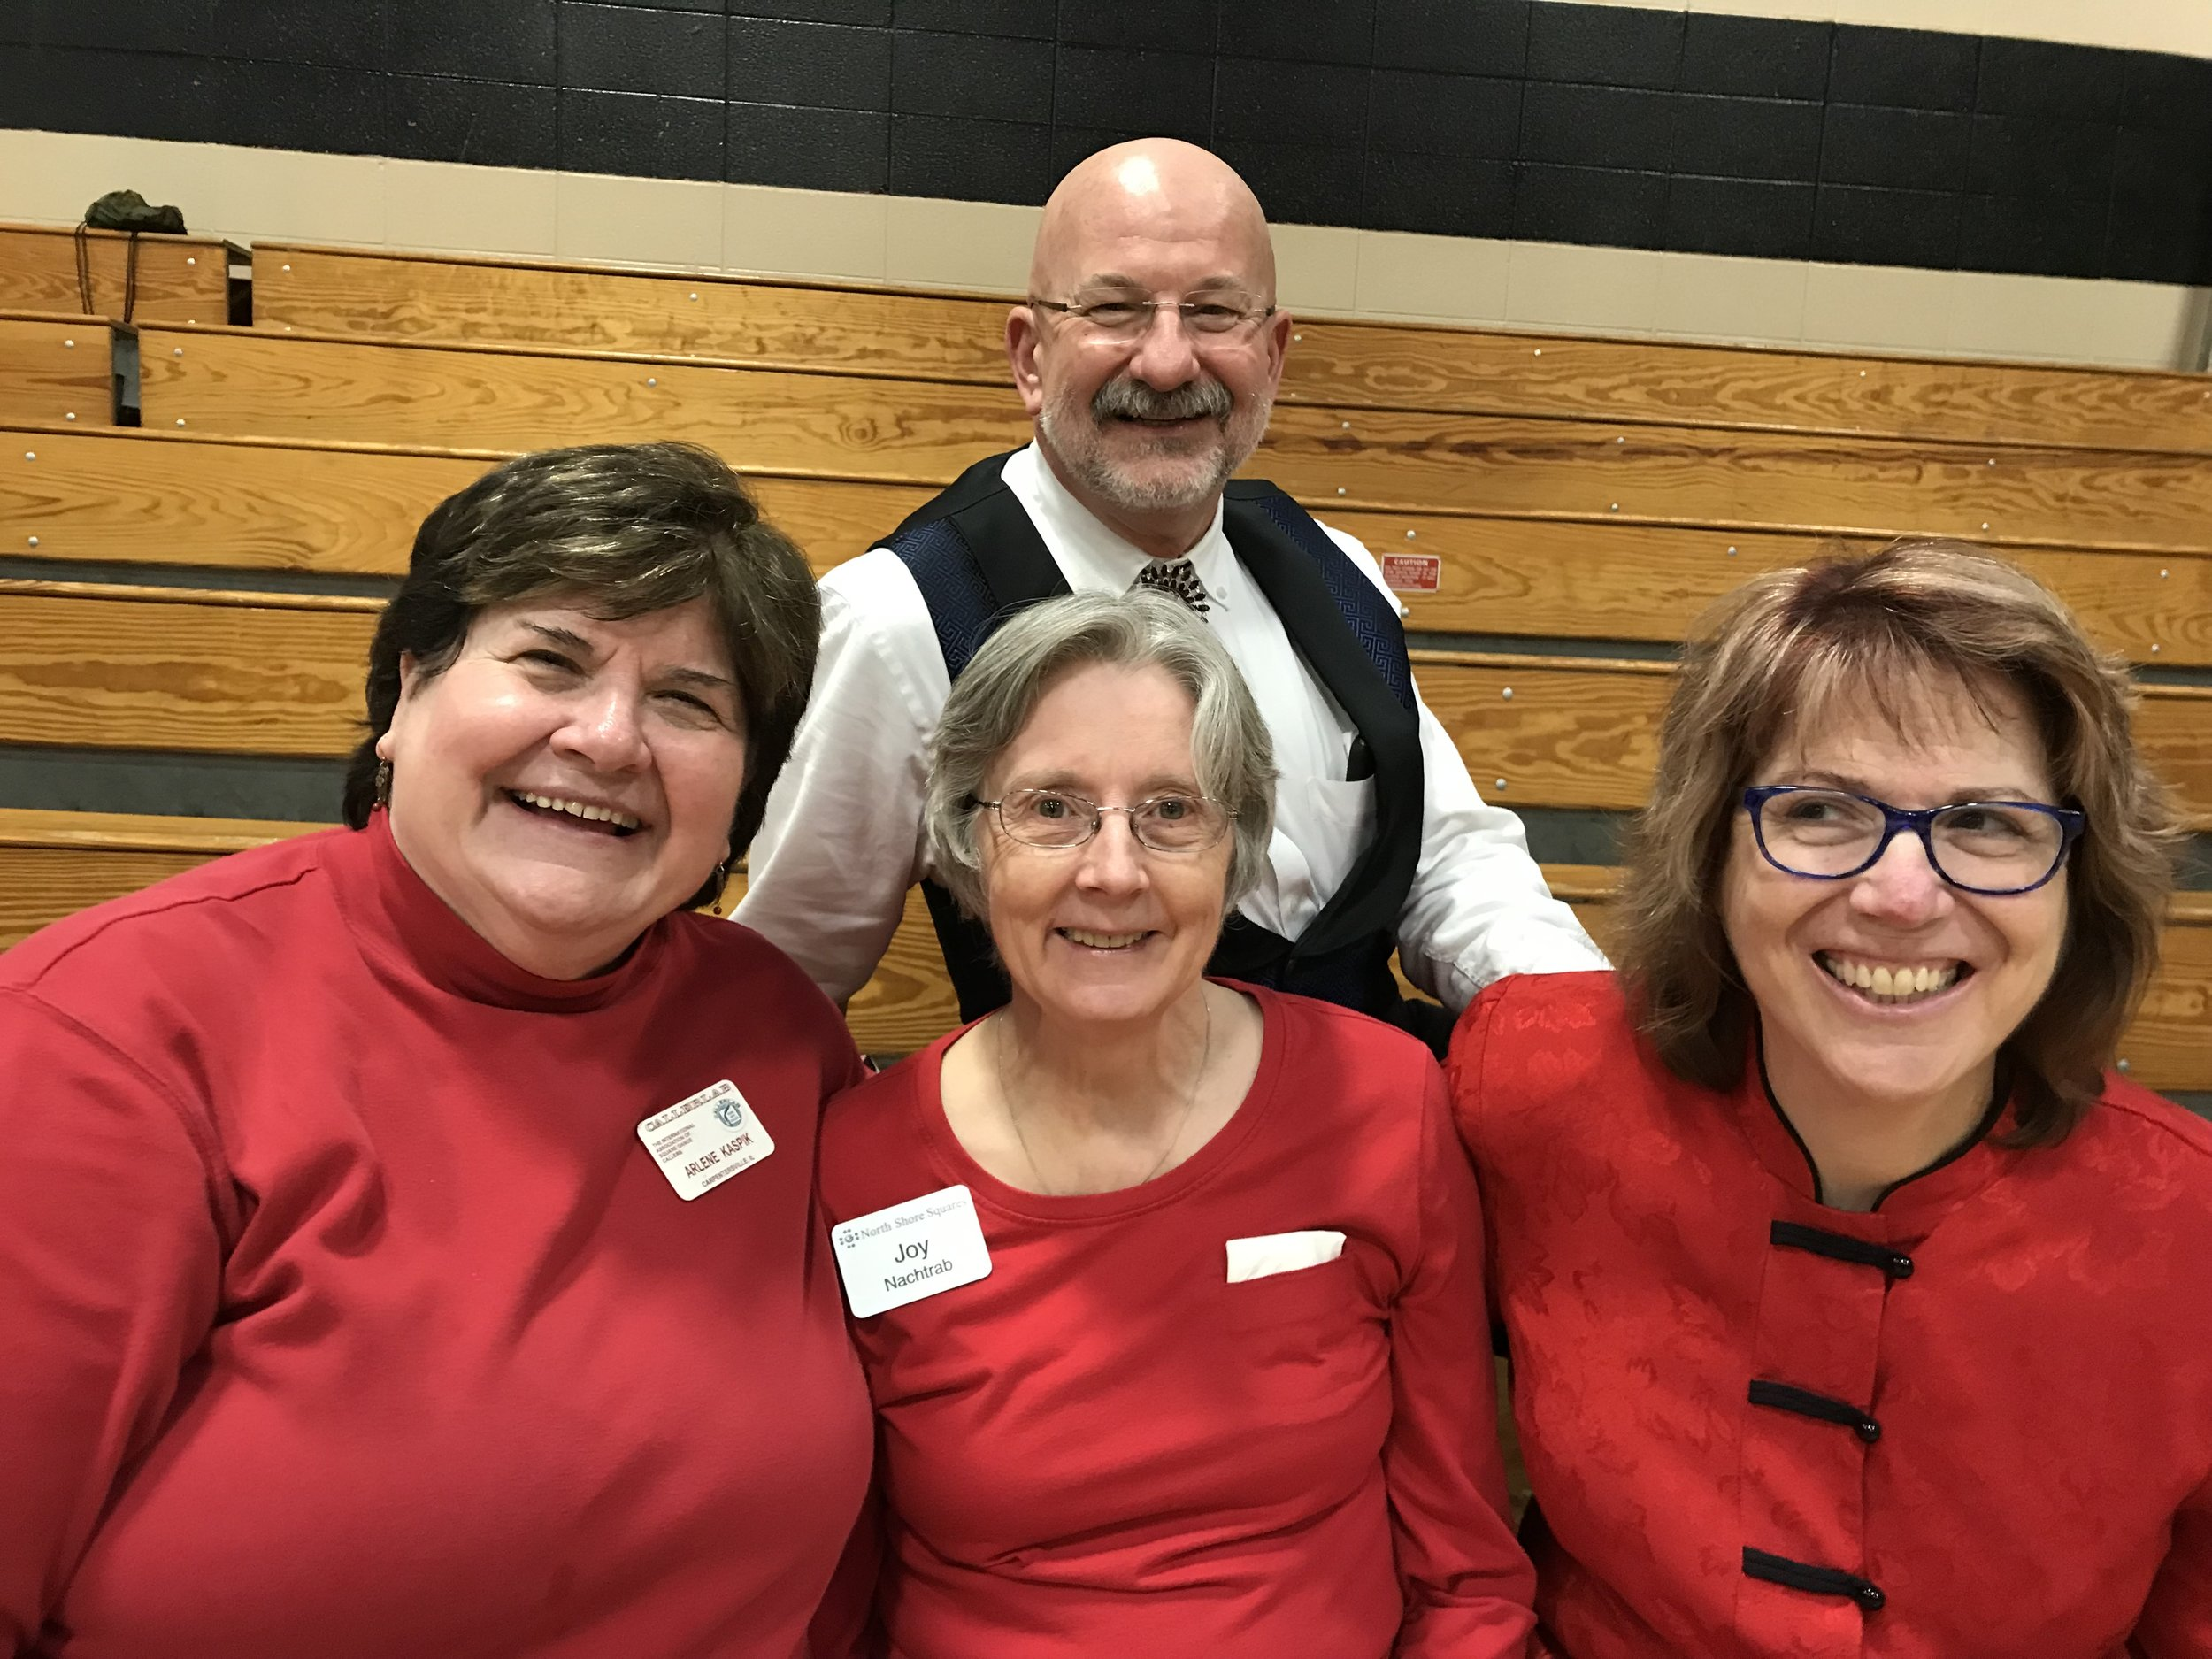 Arlene, Joy, Kate and Rob at MCASD's 57th Annual Sweetheart Dance, 2/19/2017, at Trinity Lutheran Church in Roselle